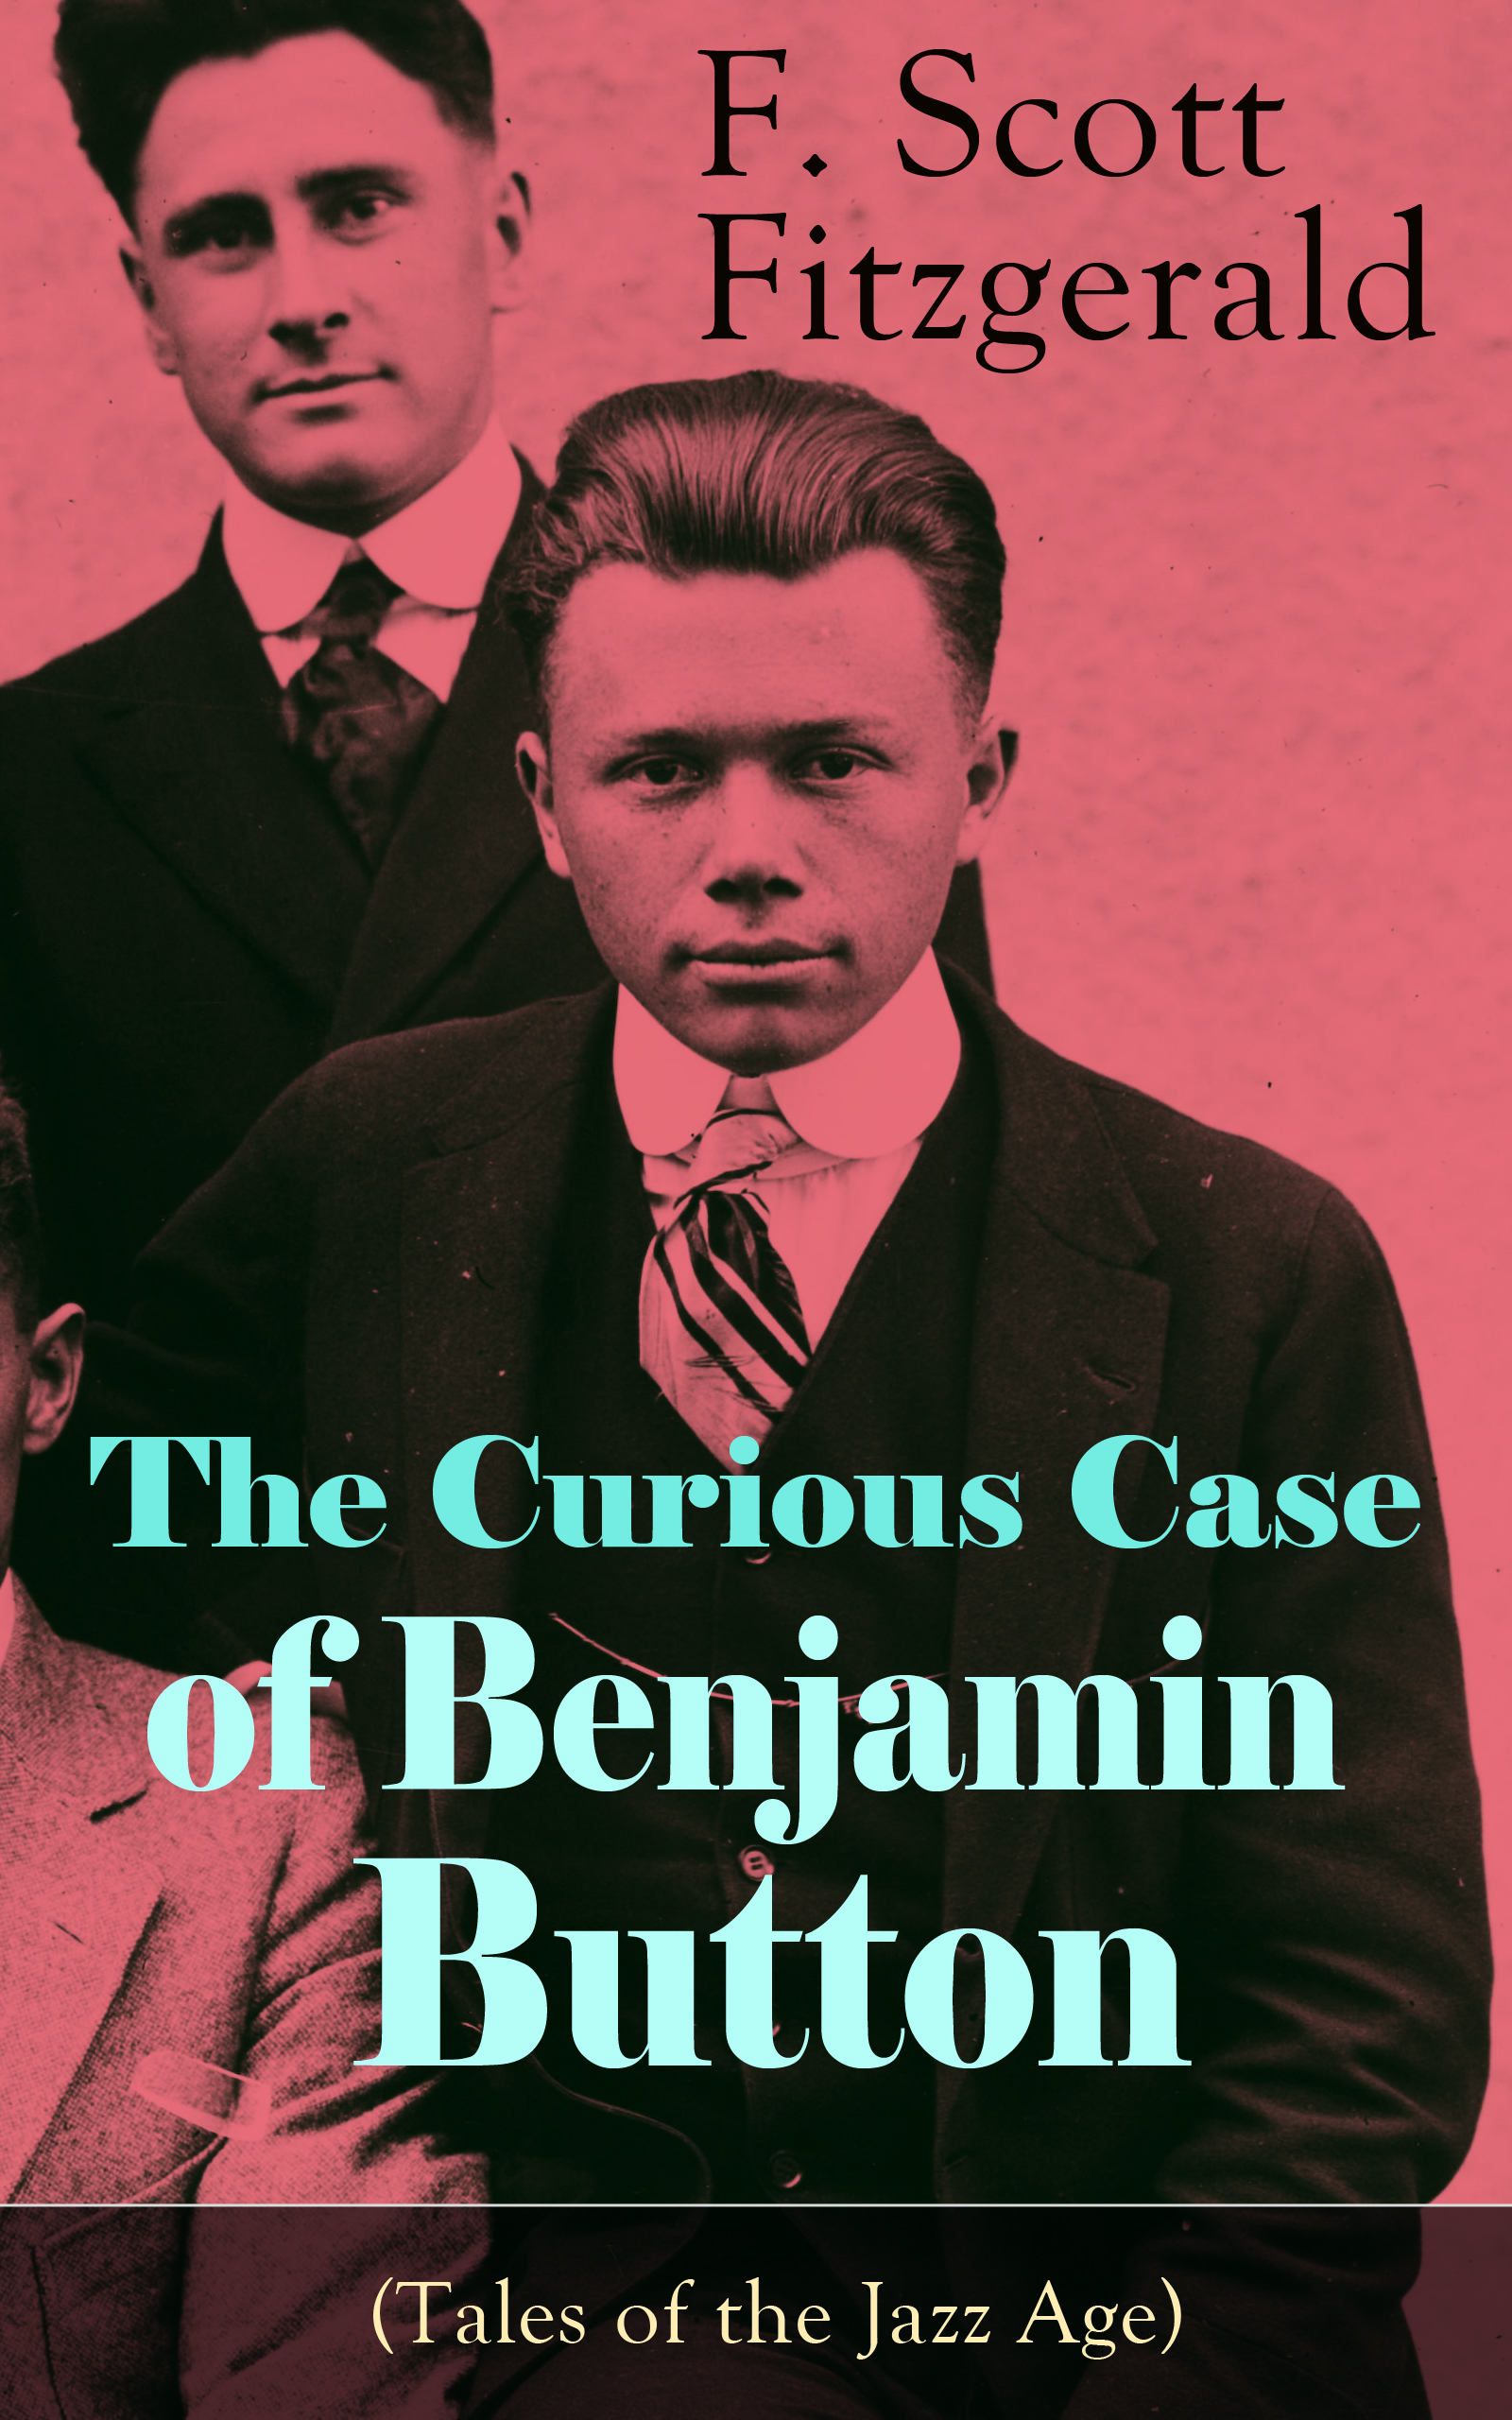 F. Scott Fitzgerald The Curious Case of Benjamin Button (Tales of the Jazz Age)